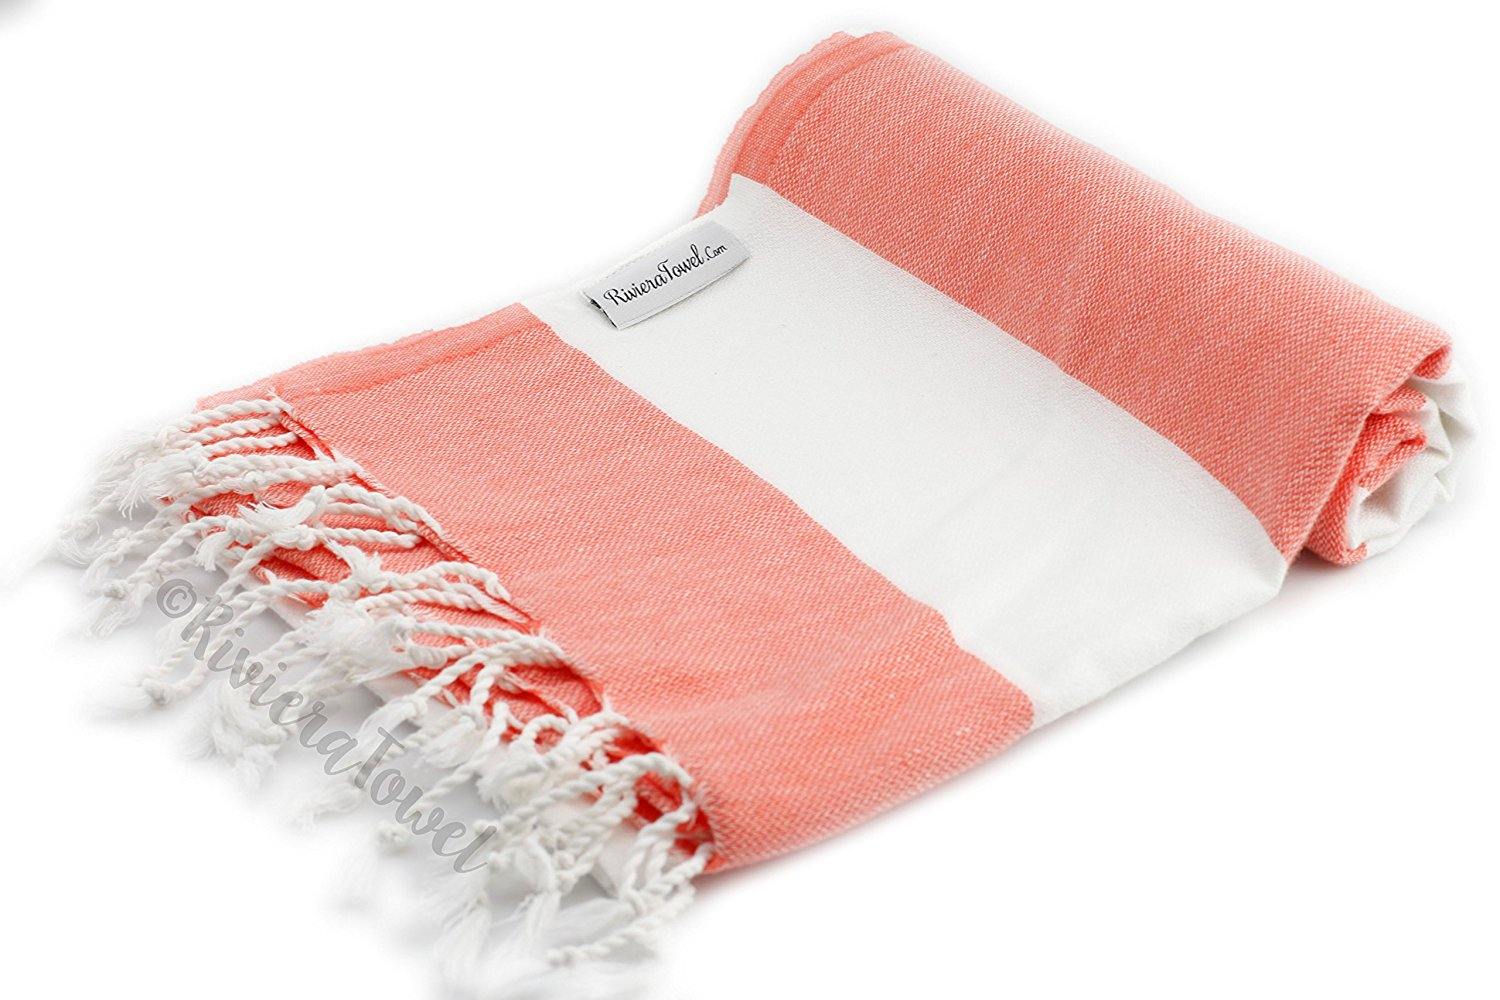 8d6cd9592d Get Quotations · Biarritz Coral Striped Turkish Towel for Bath   Beach - Swimming  Pool - Yoga Pilates -